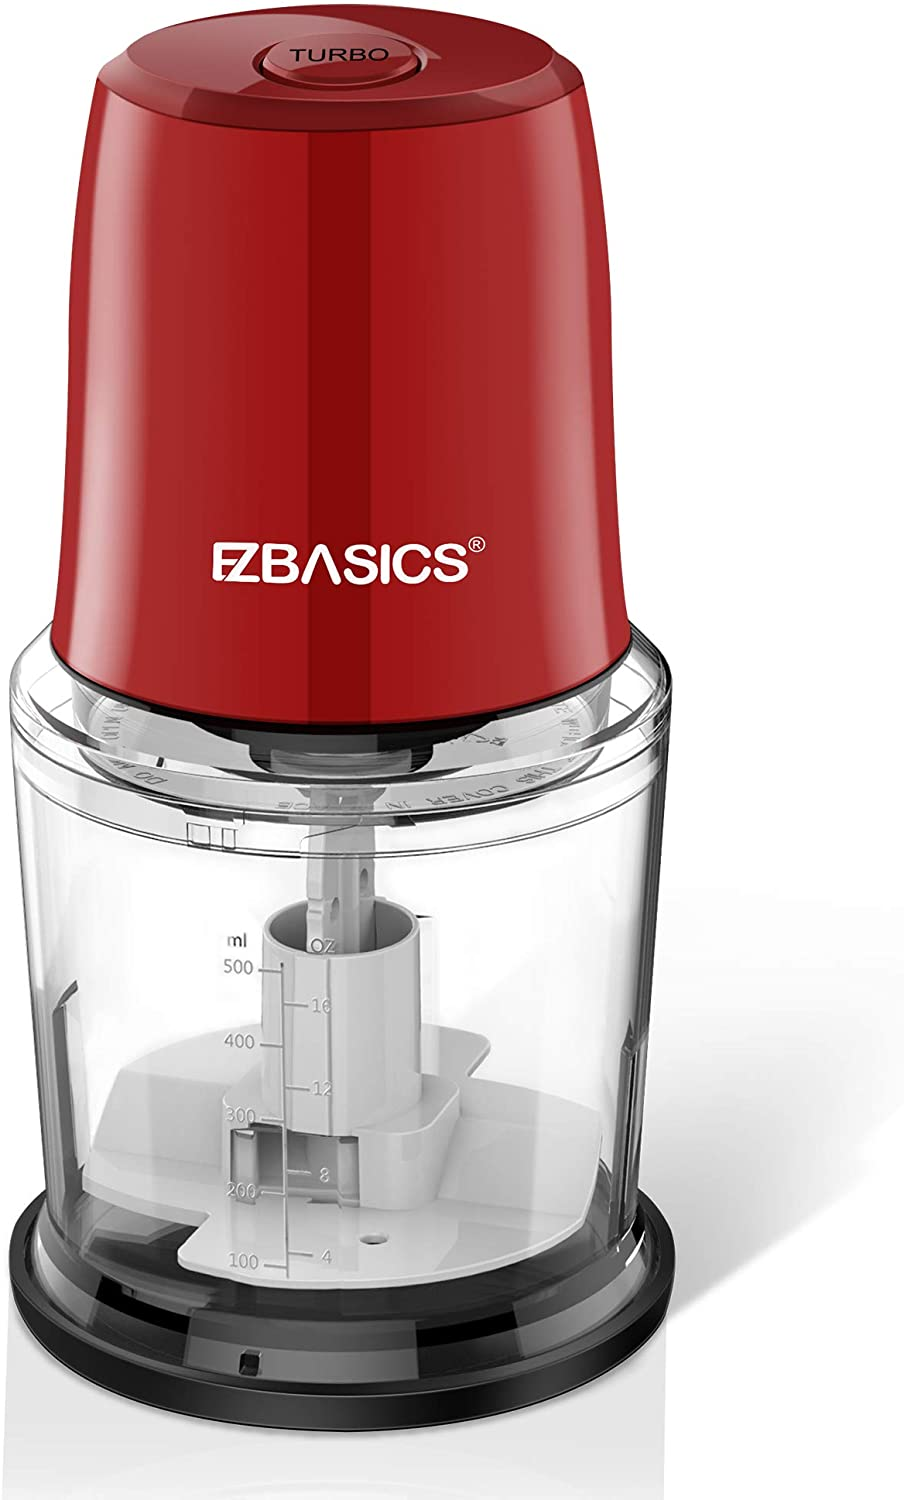 EZBASICS Food Processor